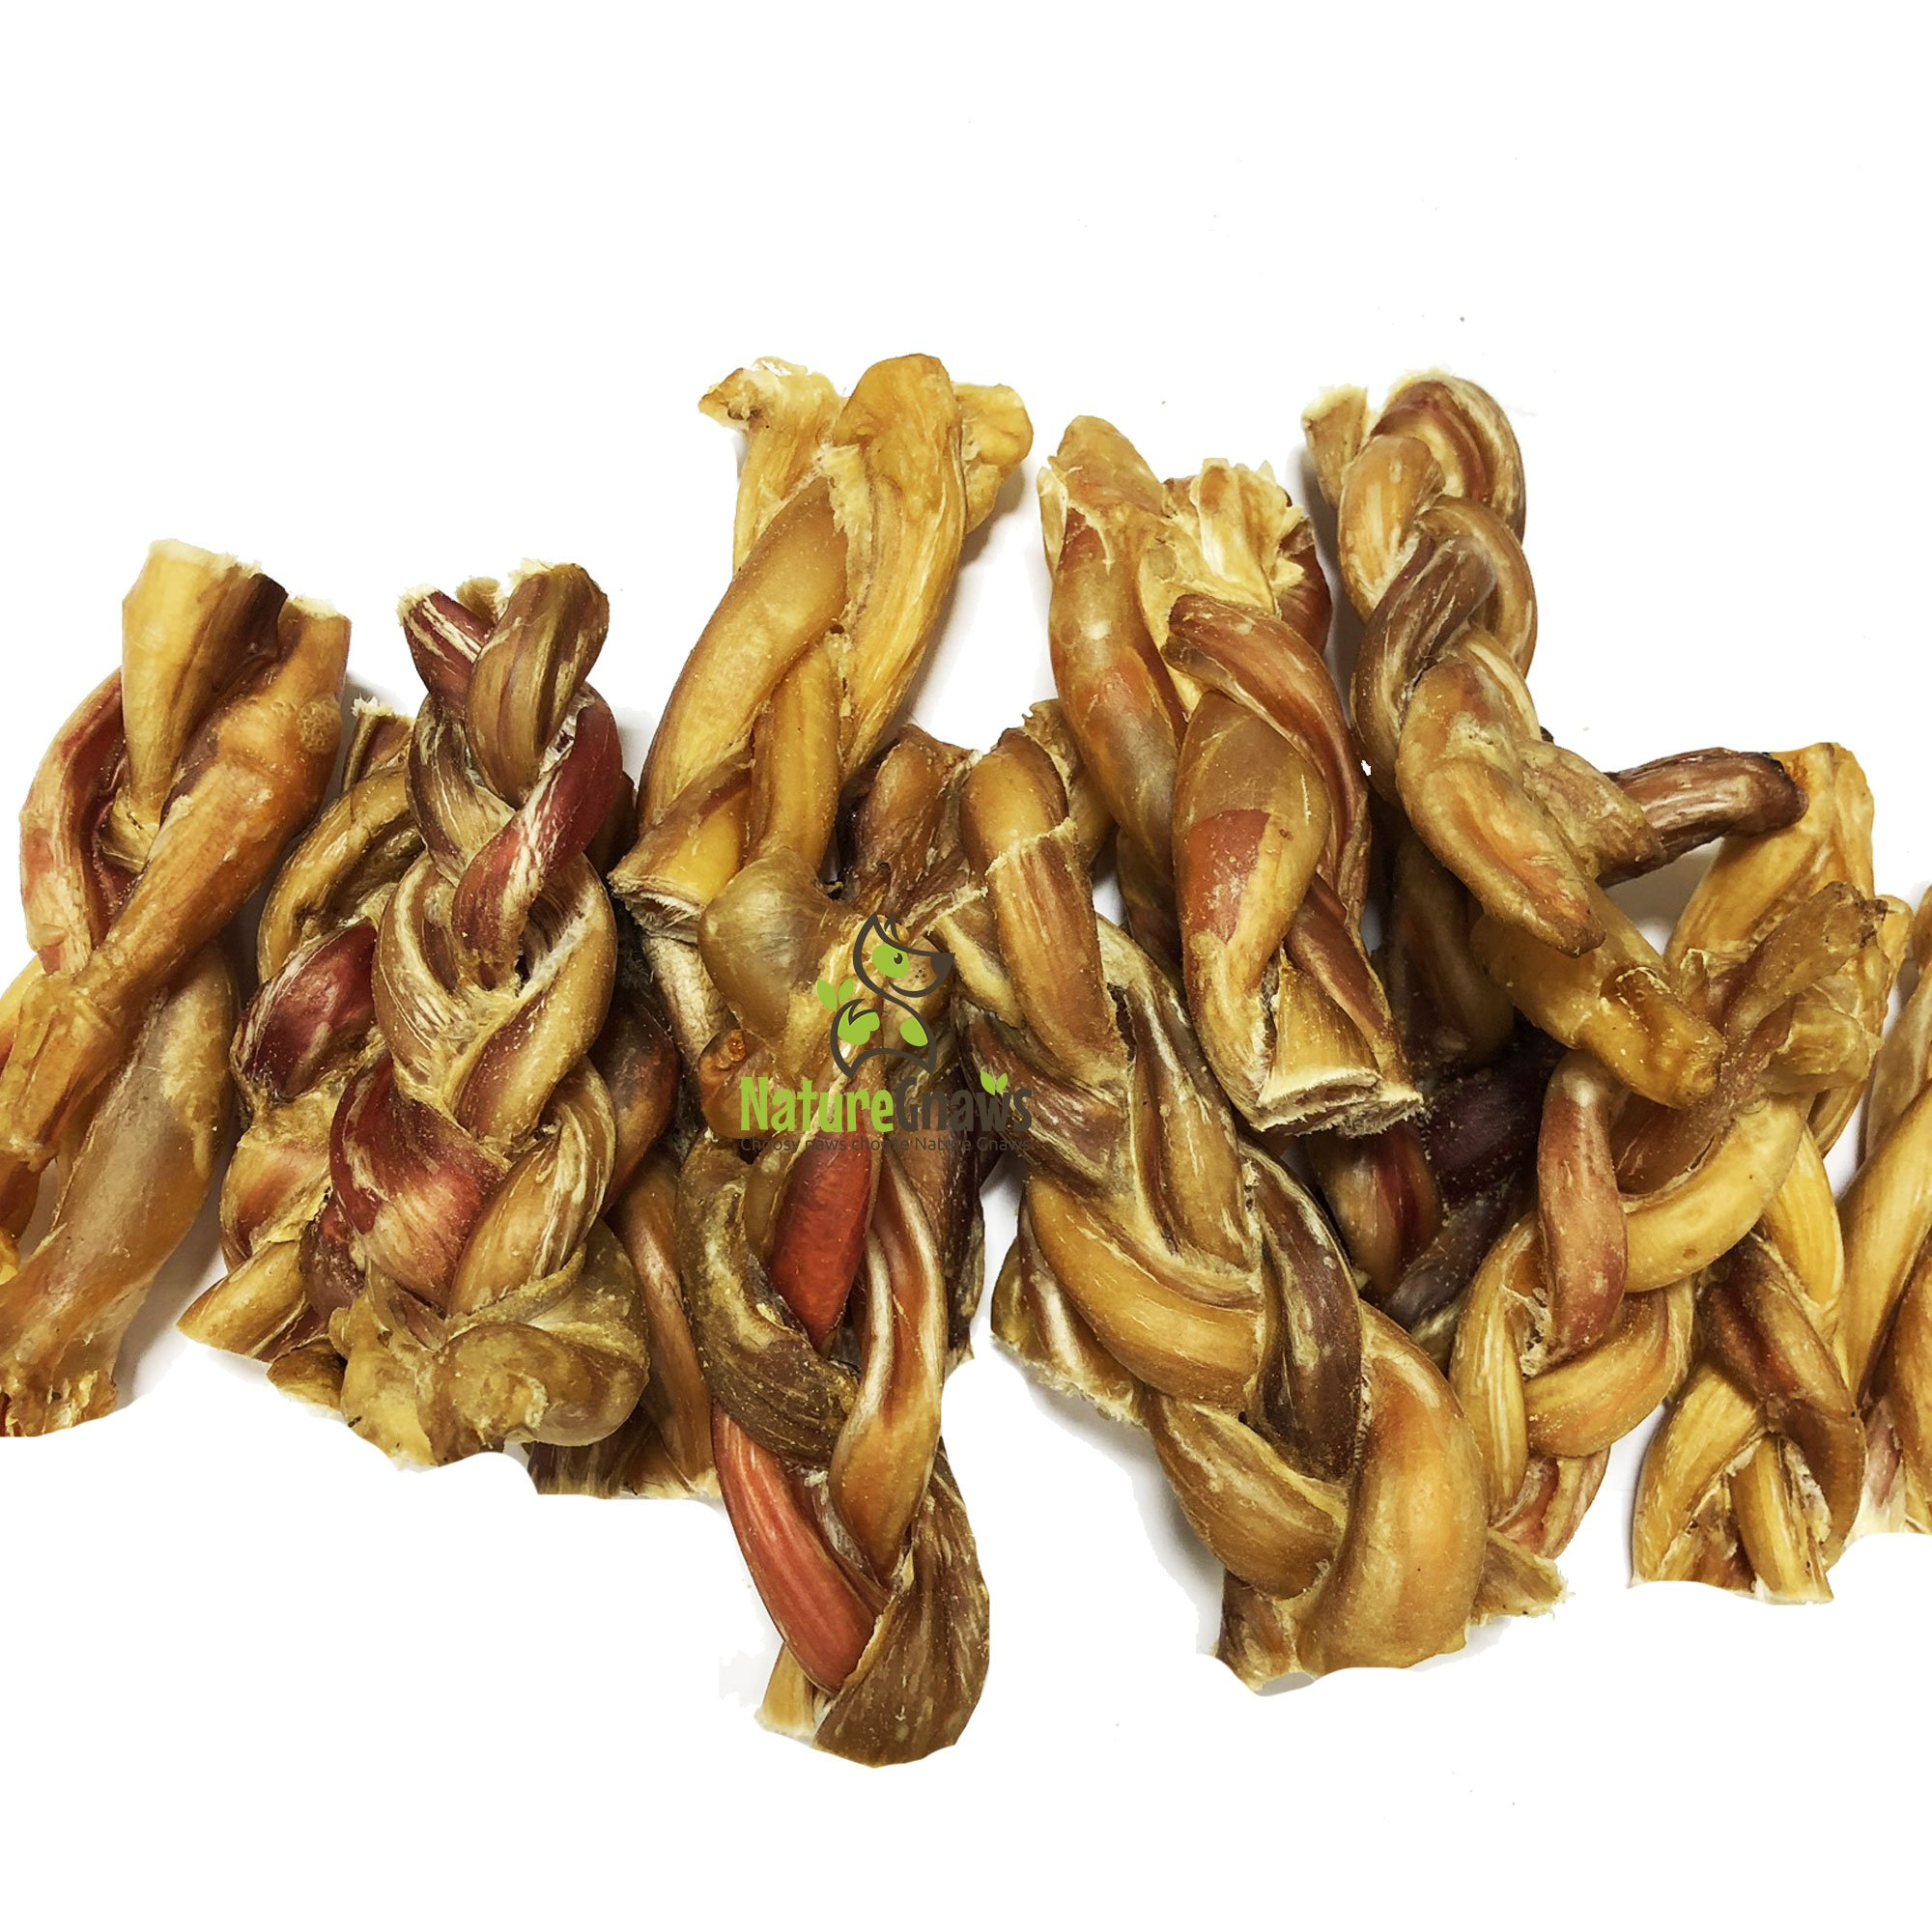 Nature Gnaws Braided Bully Stick Bites 2-4'' (15 Pack) - 100% Natural Grass-Fed Free-Range Premium Beef Dog Chews by Nature Gnaws (Image #2)